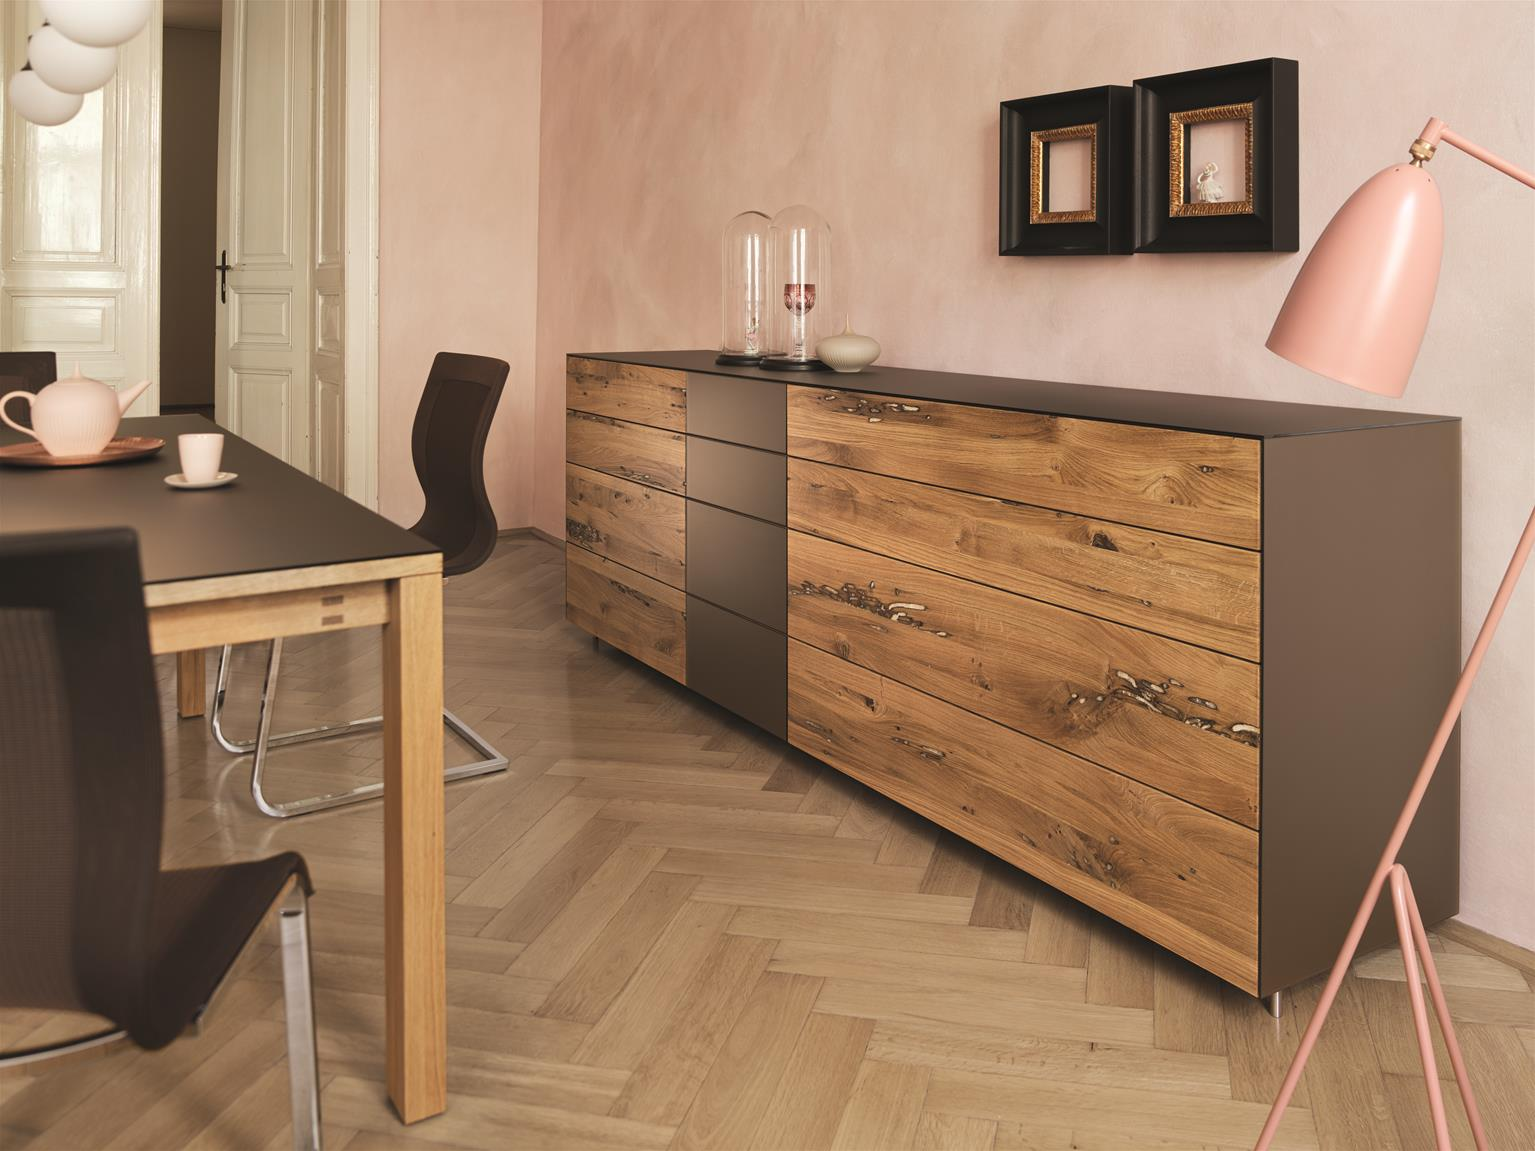 massivholzm bel m bel aus massivem holz wohnwiese jette schlund ellingen team 7. Black Bedroom Furniture Sets. Home Design Ideas